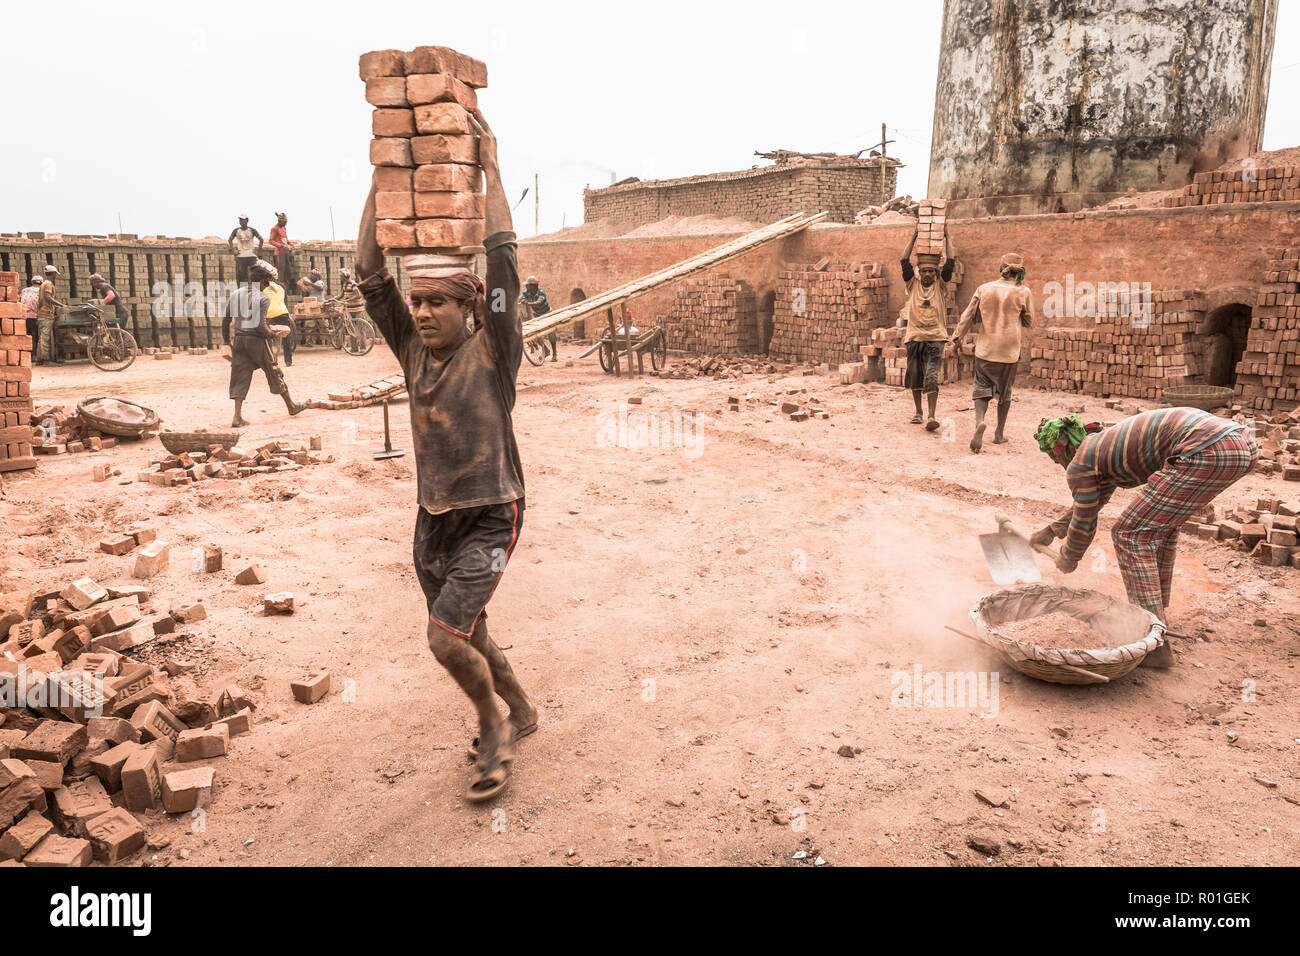 Workers with bricks on their heads in the brickyard, Dhaka, Bangladesh - Stock Image